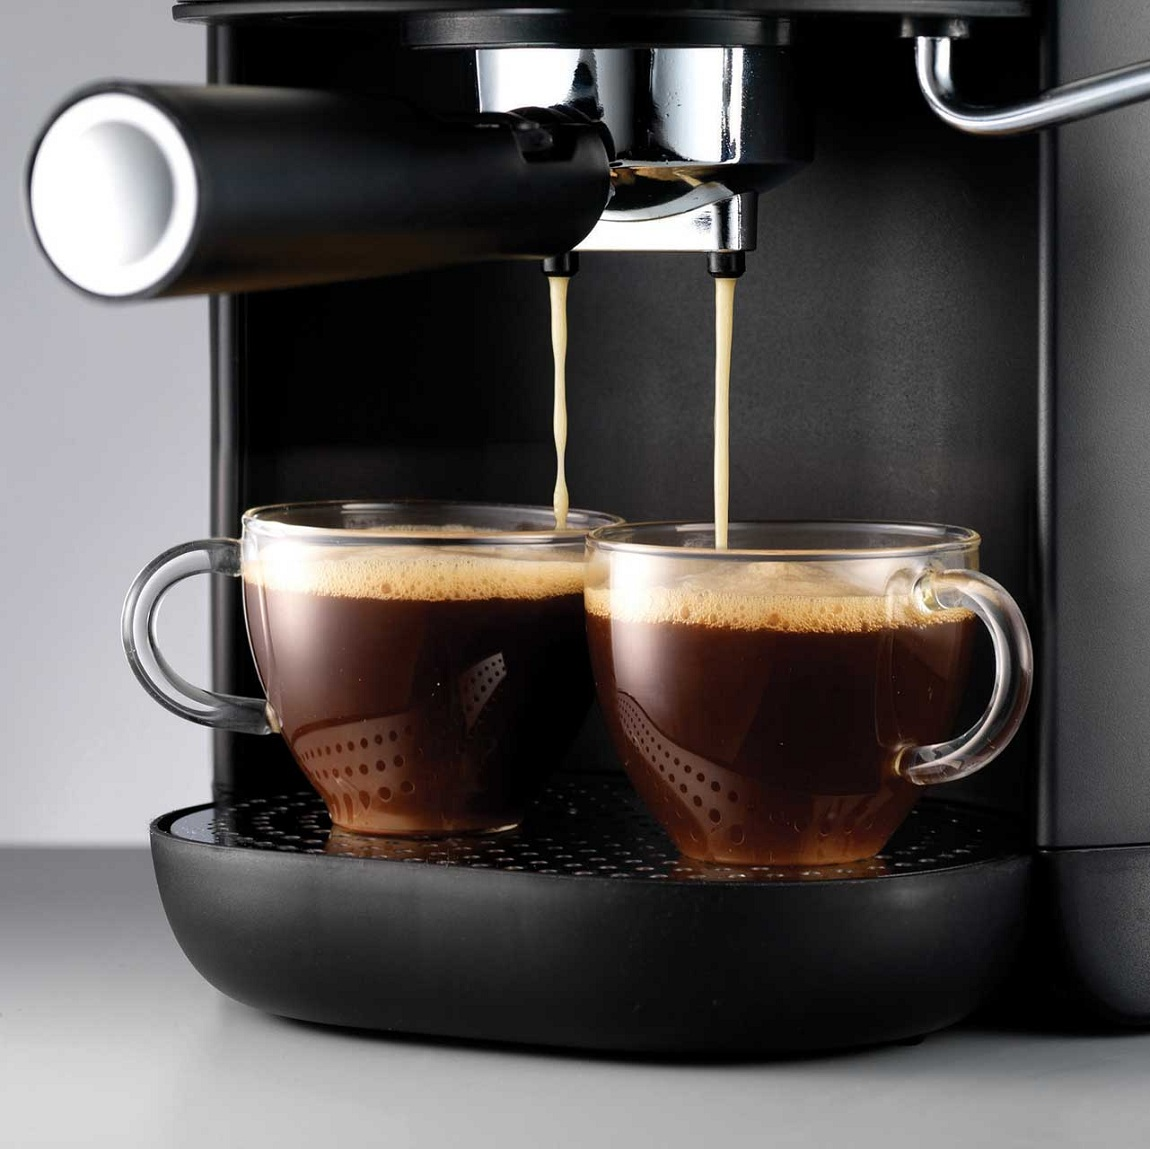 Morphy Richards Espresso Coffee Maker User Manual : Morphy Richards 172003 Espresso Coffee Maker Machine Cappuccino Frother Black eBay